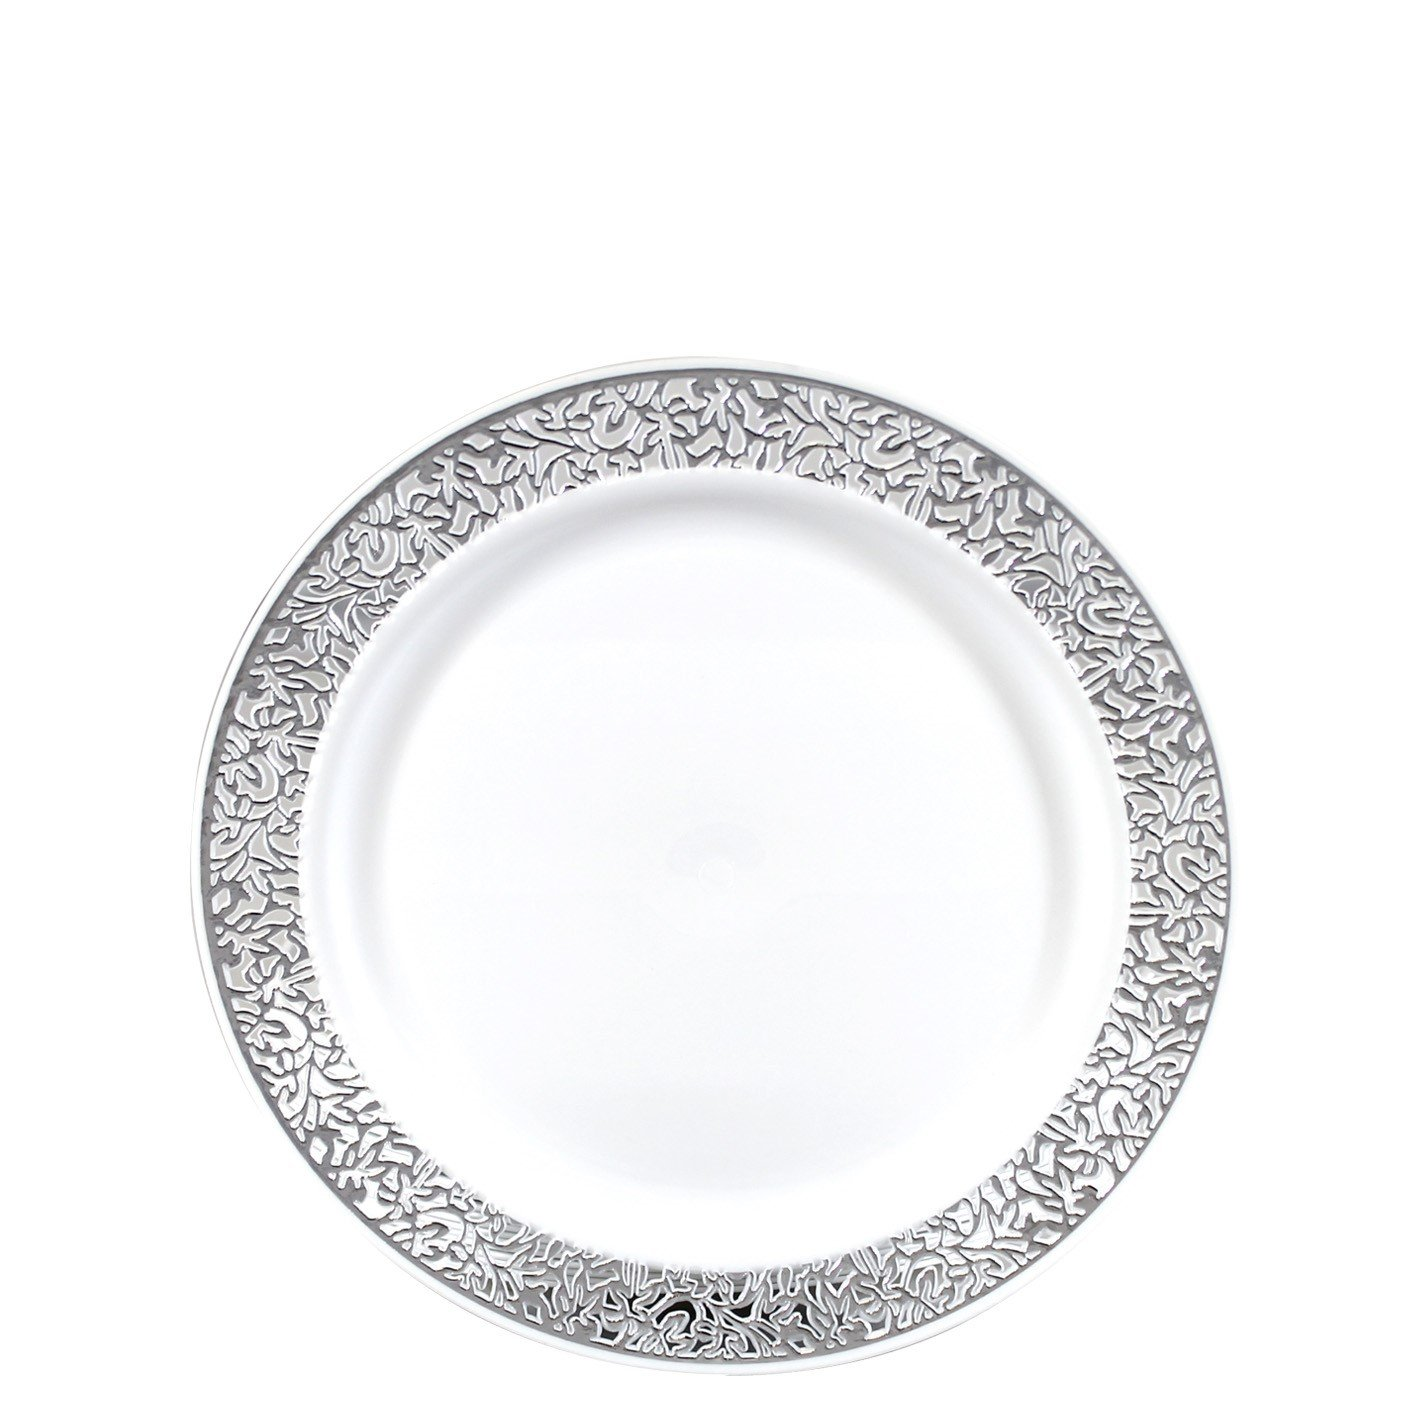 """Gourmet Home Products 24 Count Premium Reusable Heavyweight Plastic Salad Plates, 7.5"""", White/Silver, Metallic Lace Trim"""